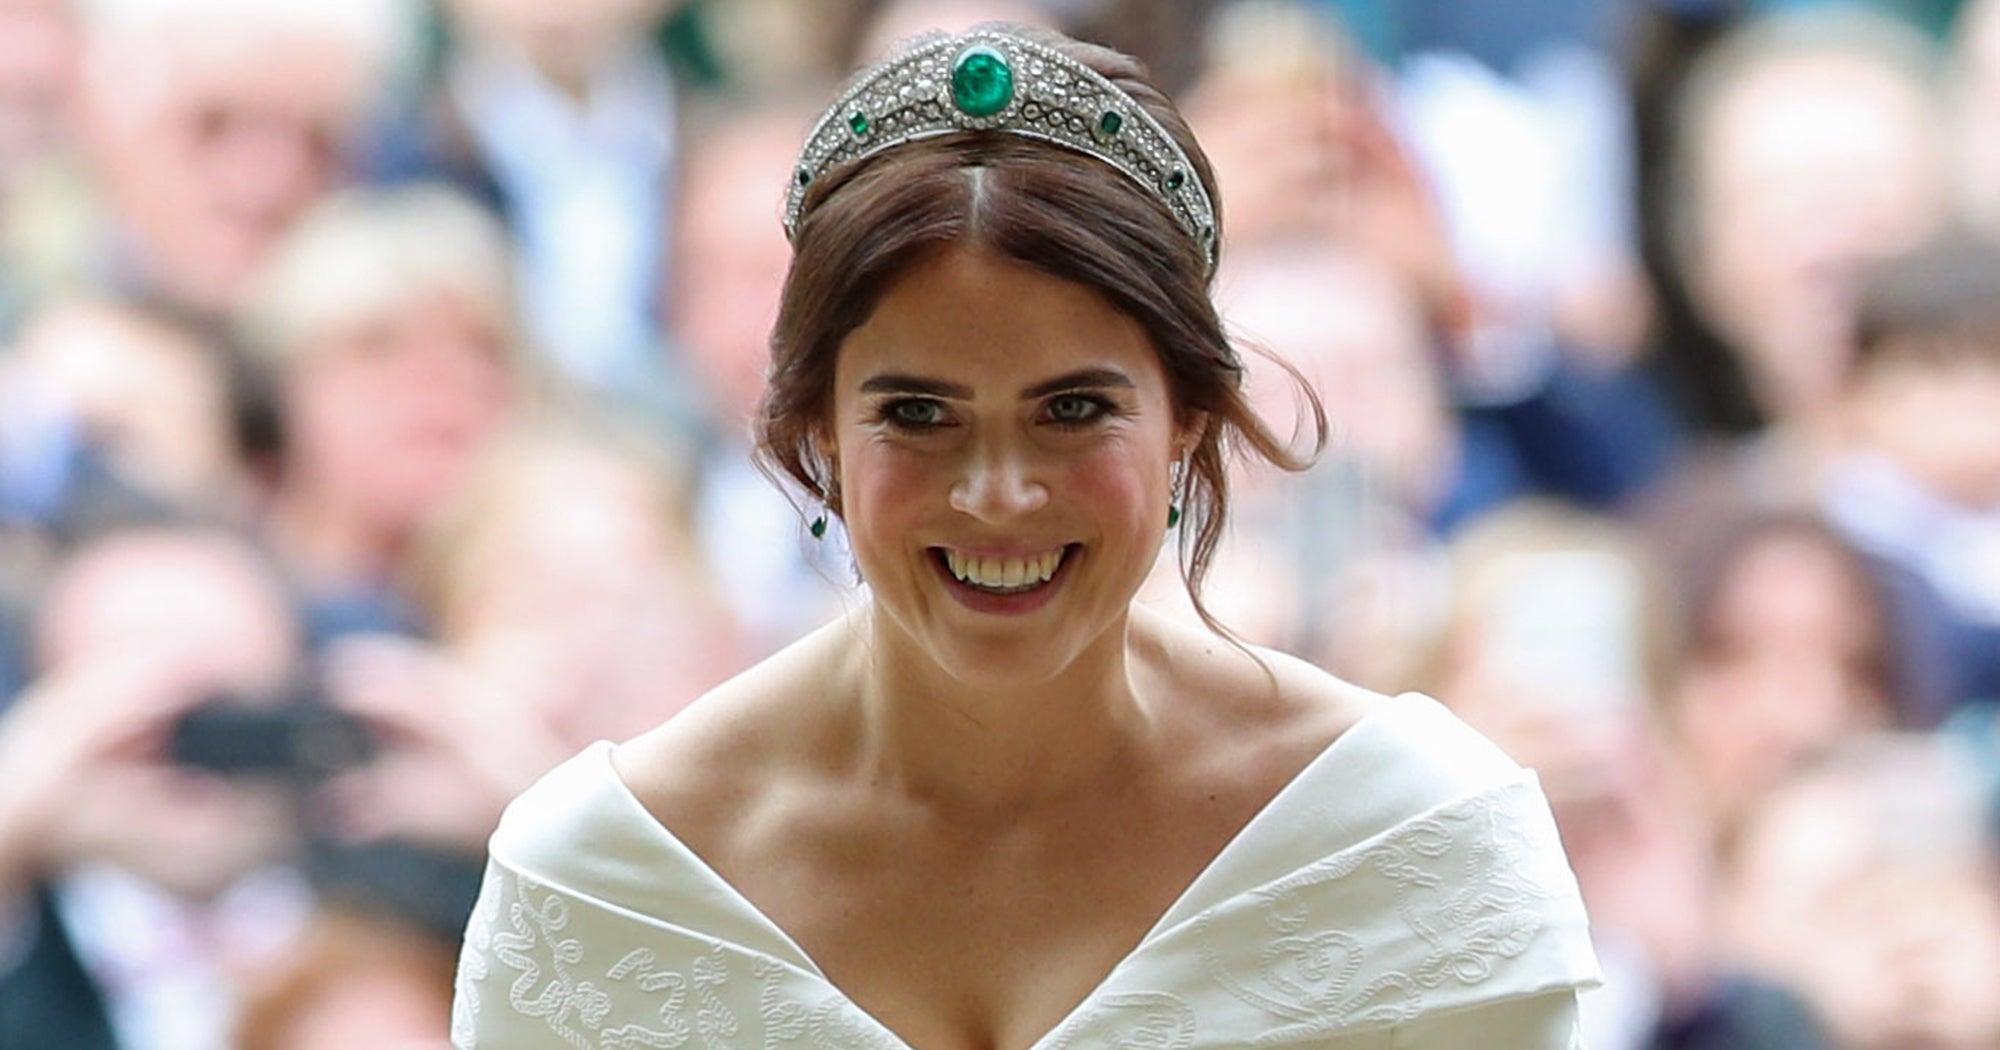 www.refinery29.com: Princess Eugenie's Padded Velvet Headband Is About To Sell Out